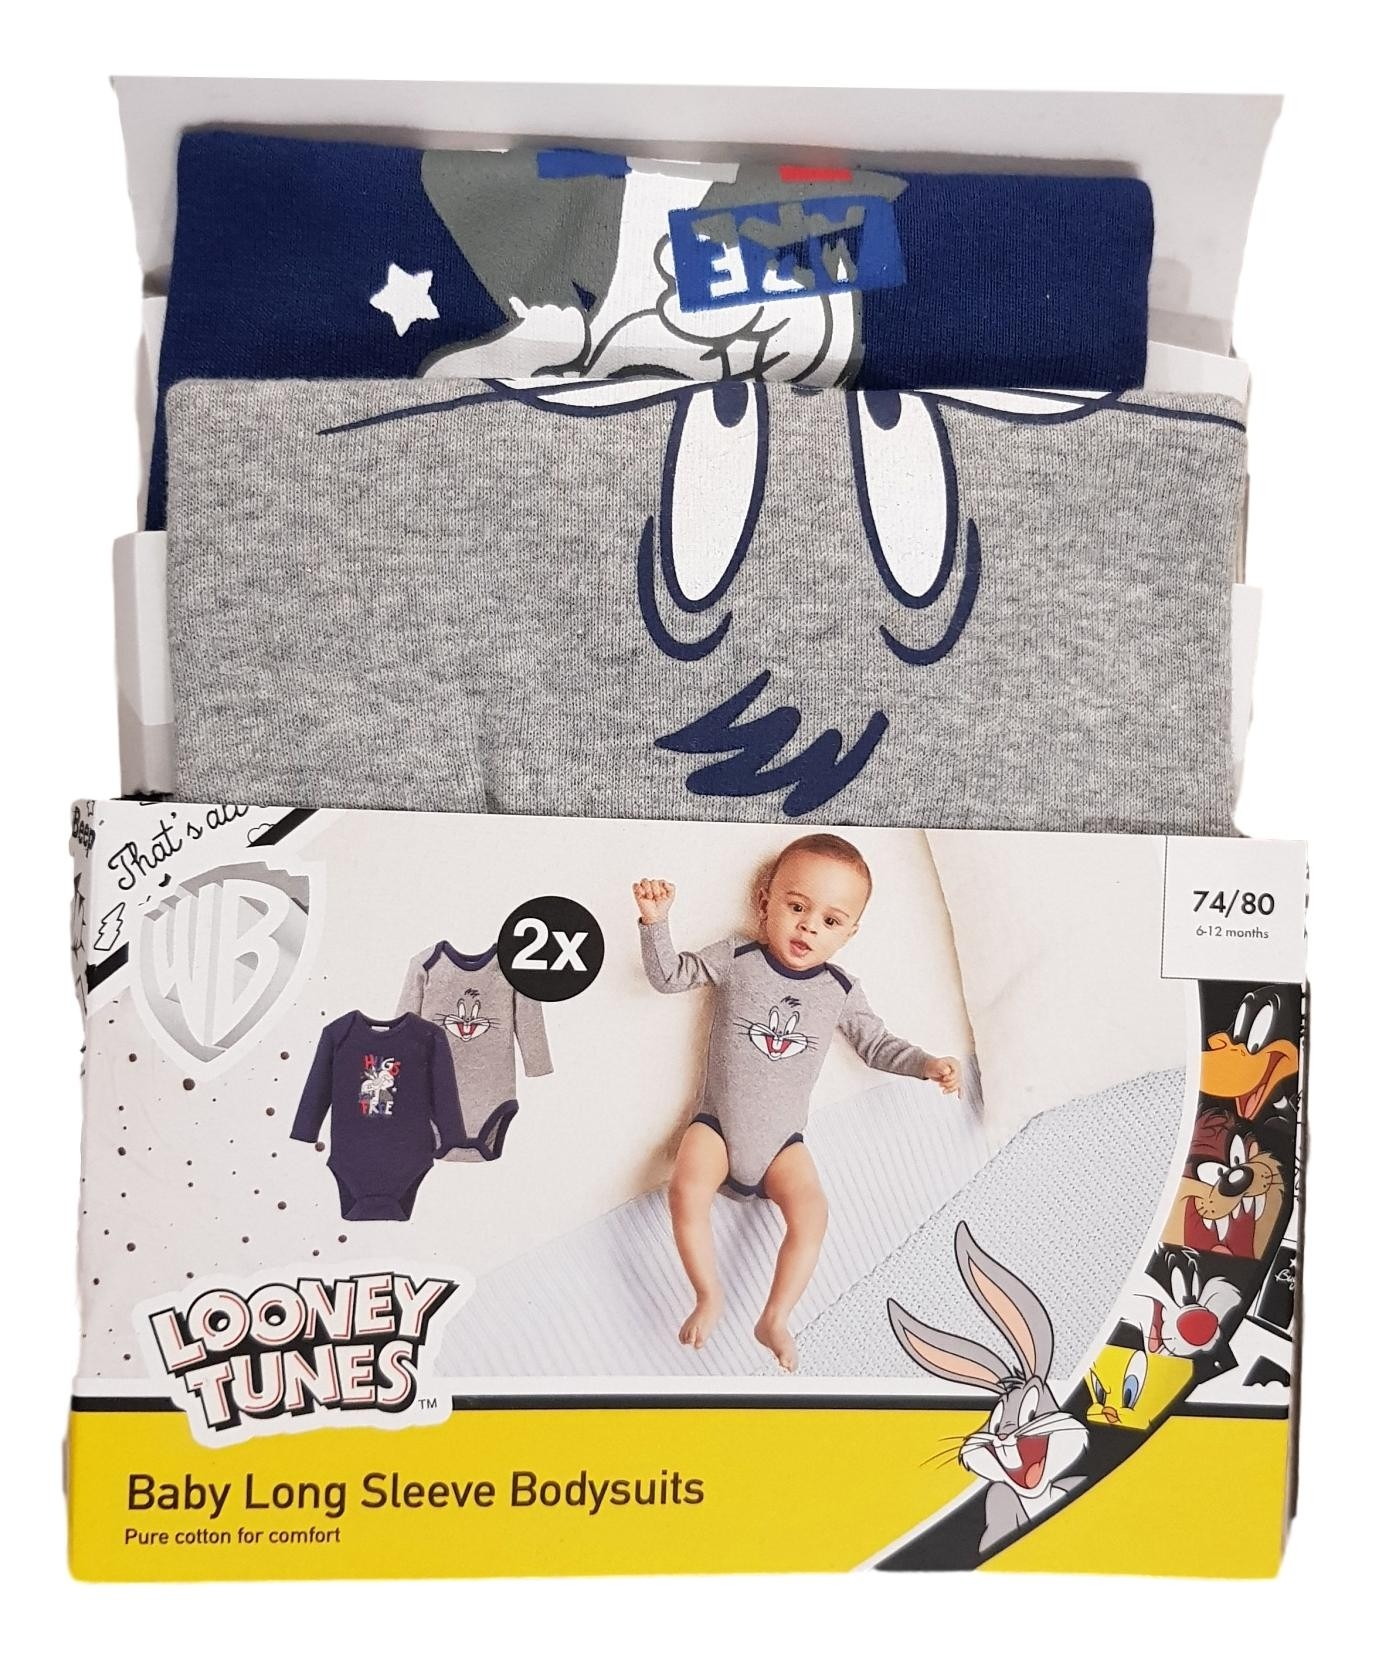 Looney Tunes 'Bugs Bunny' Baby Boys 2 Pack of Bodysuits PACK OF 6